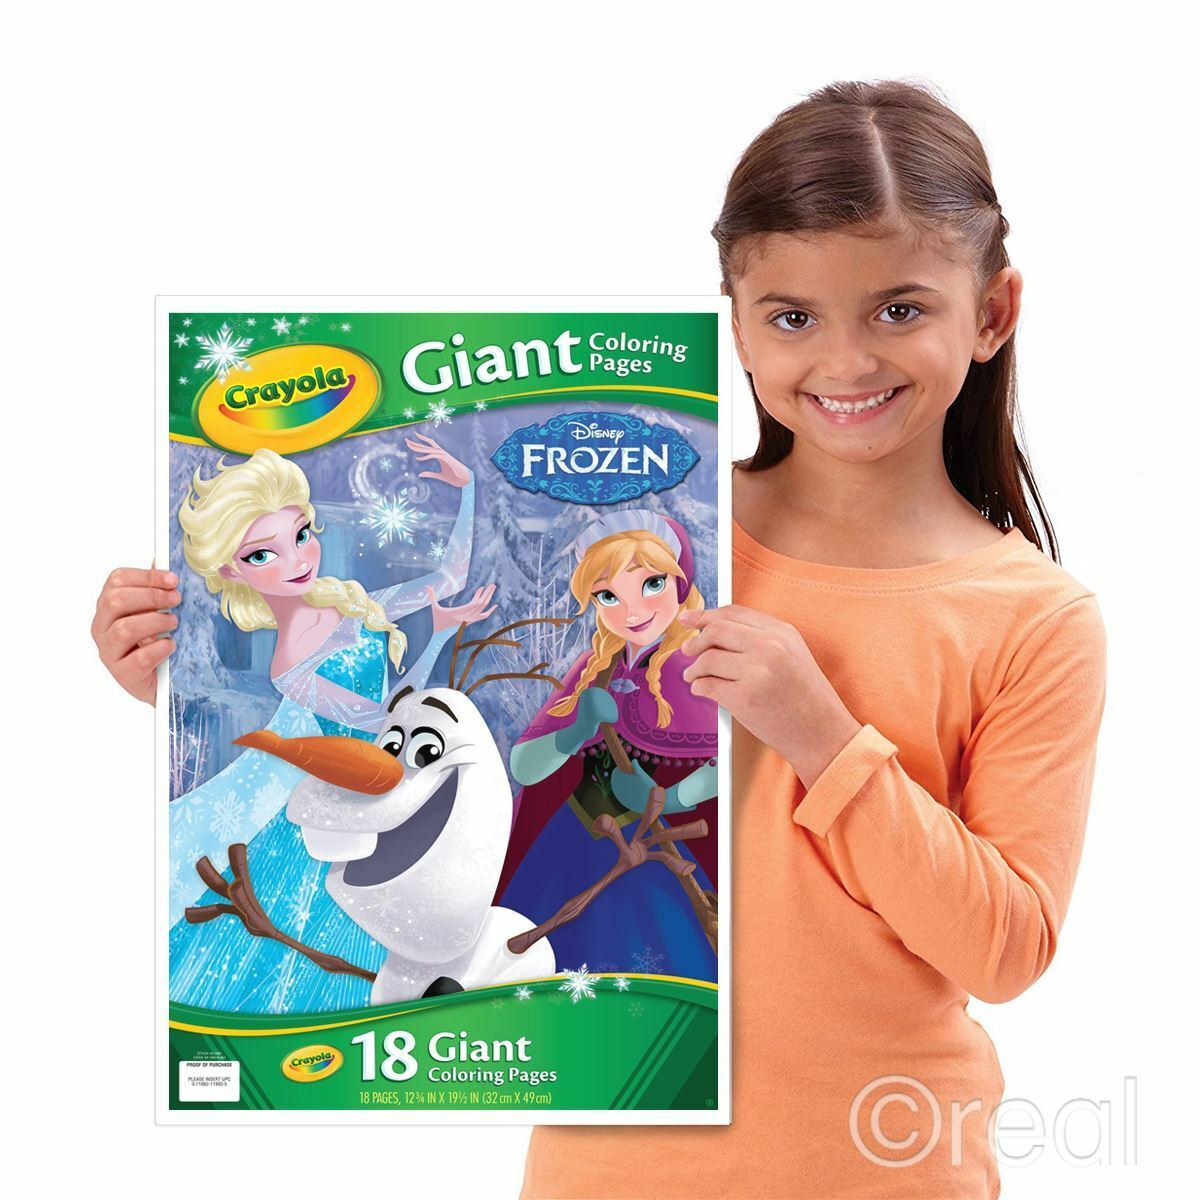 Crayola Disney Frozen Giant Coloring Pages Model 19438397 Ebay